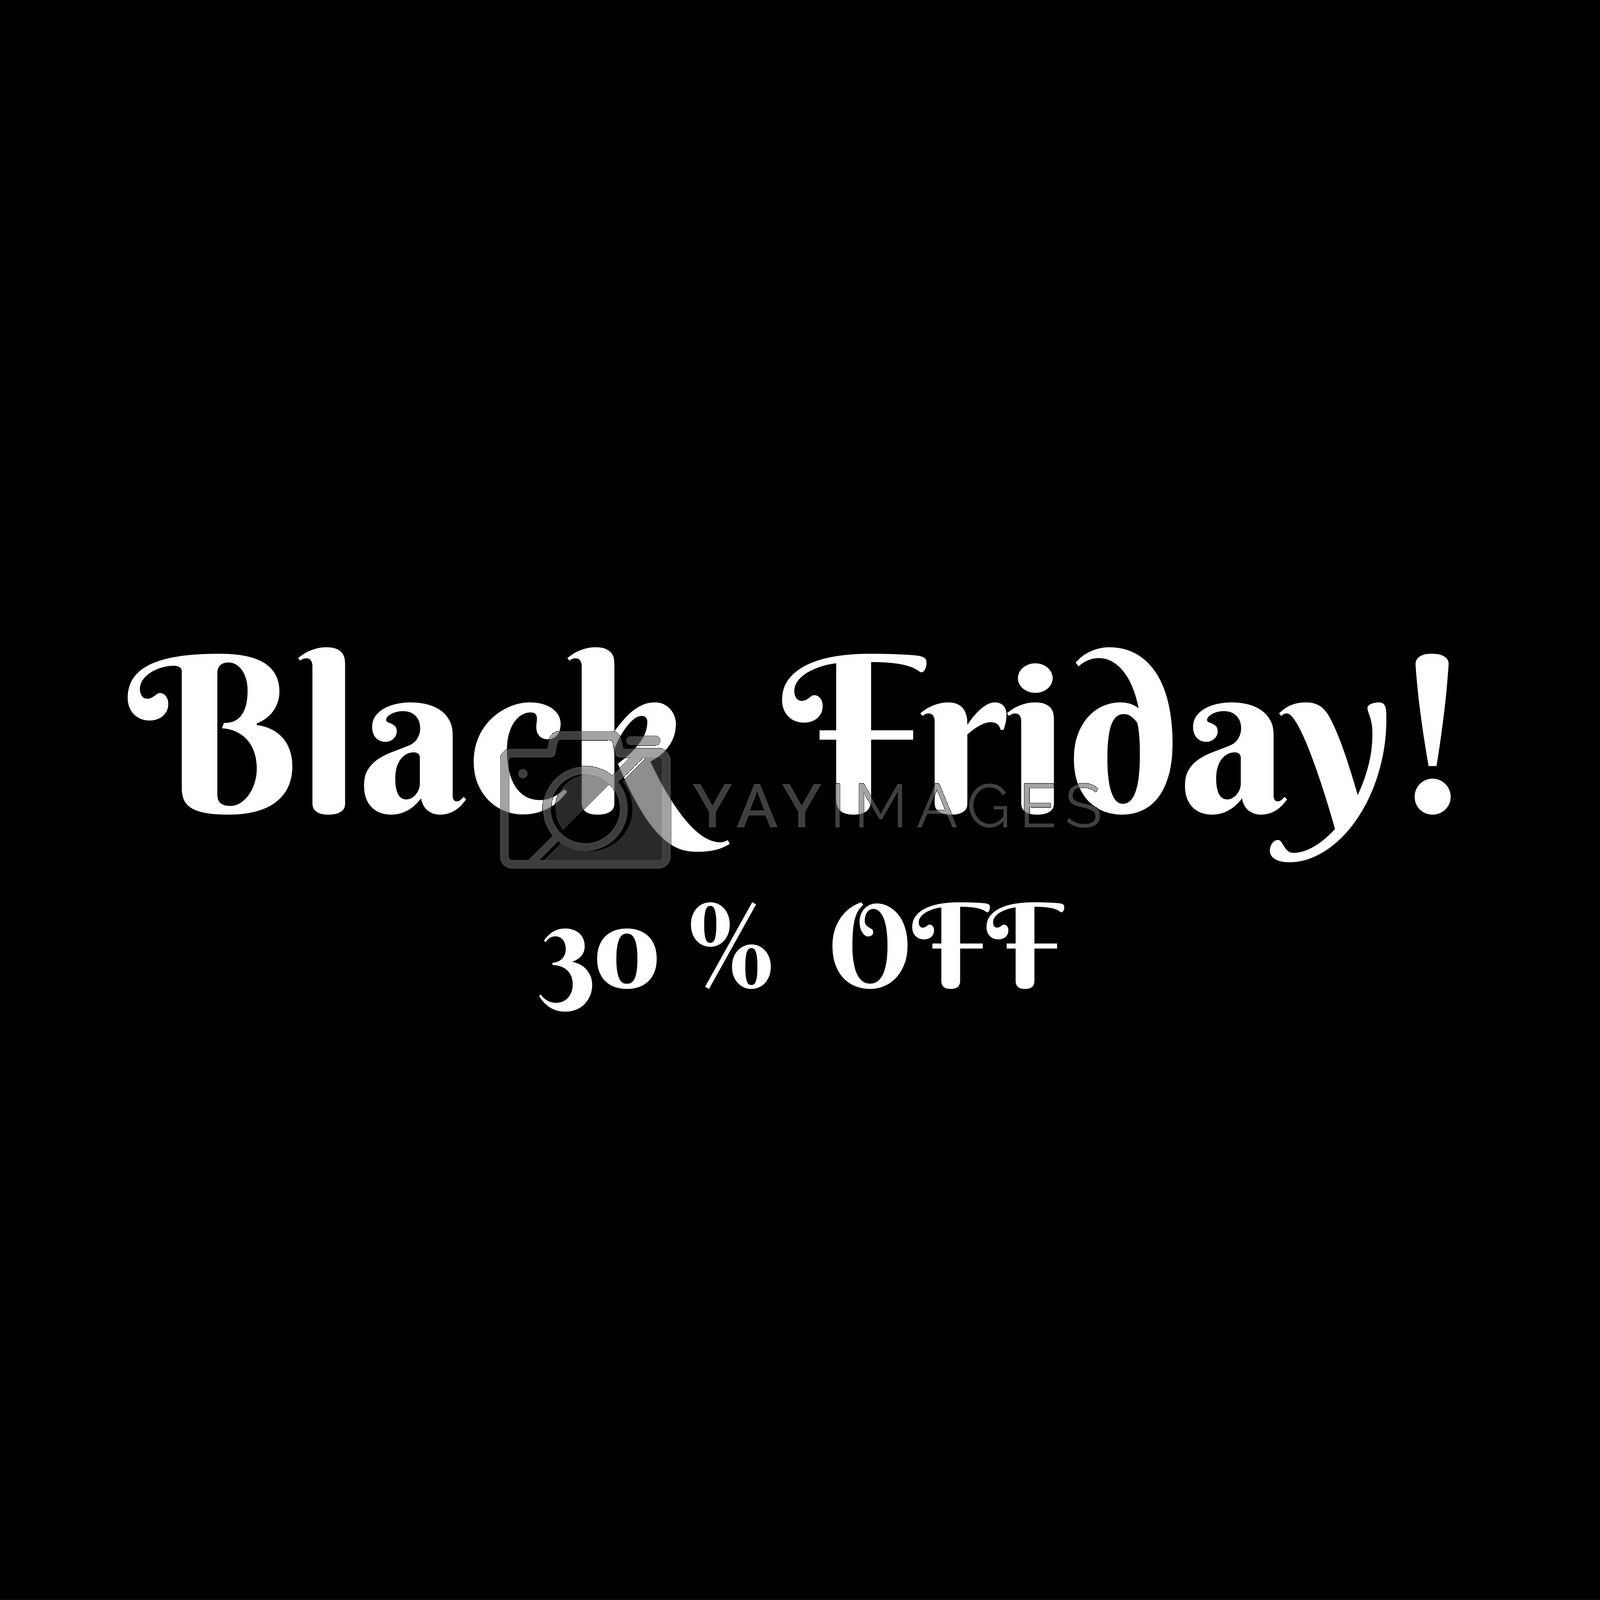 Delicious black and white design. Black Friday 30 % OFF eshop vintage hand-drawn sign!